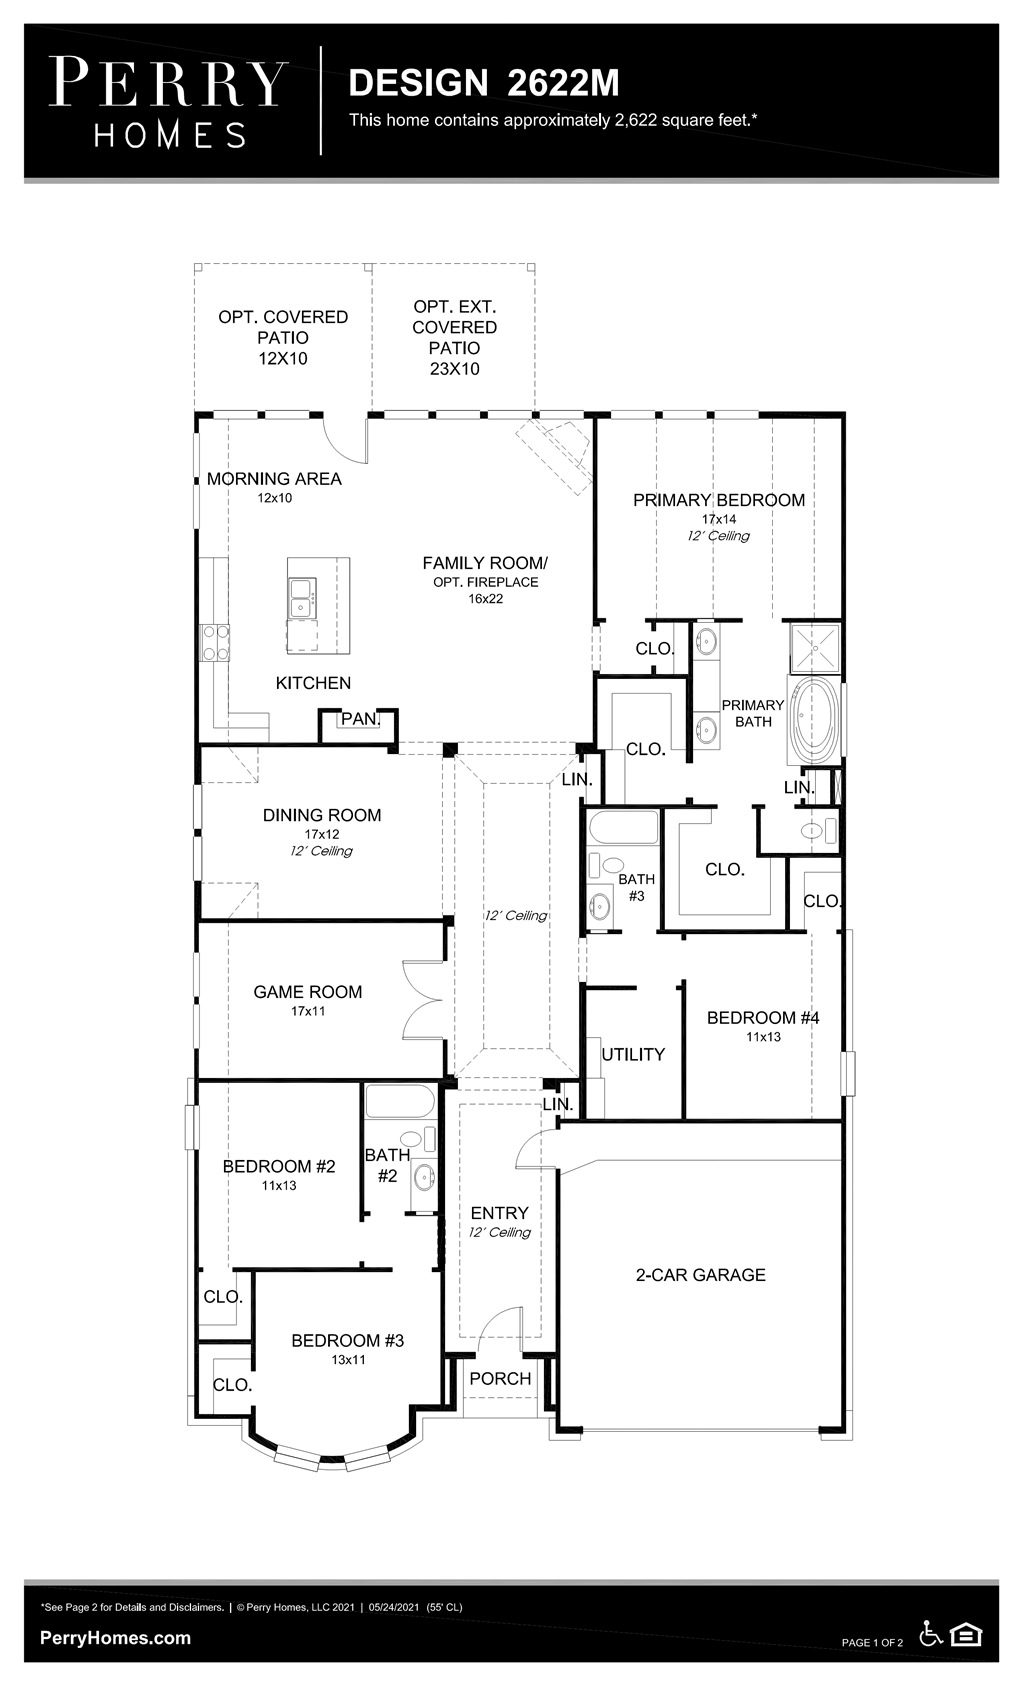 Floor Plan for 2622M